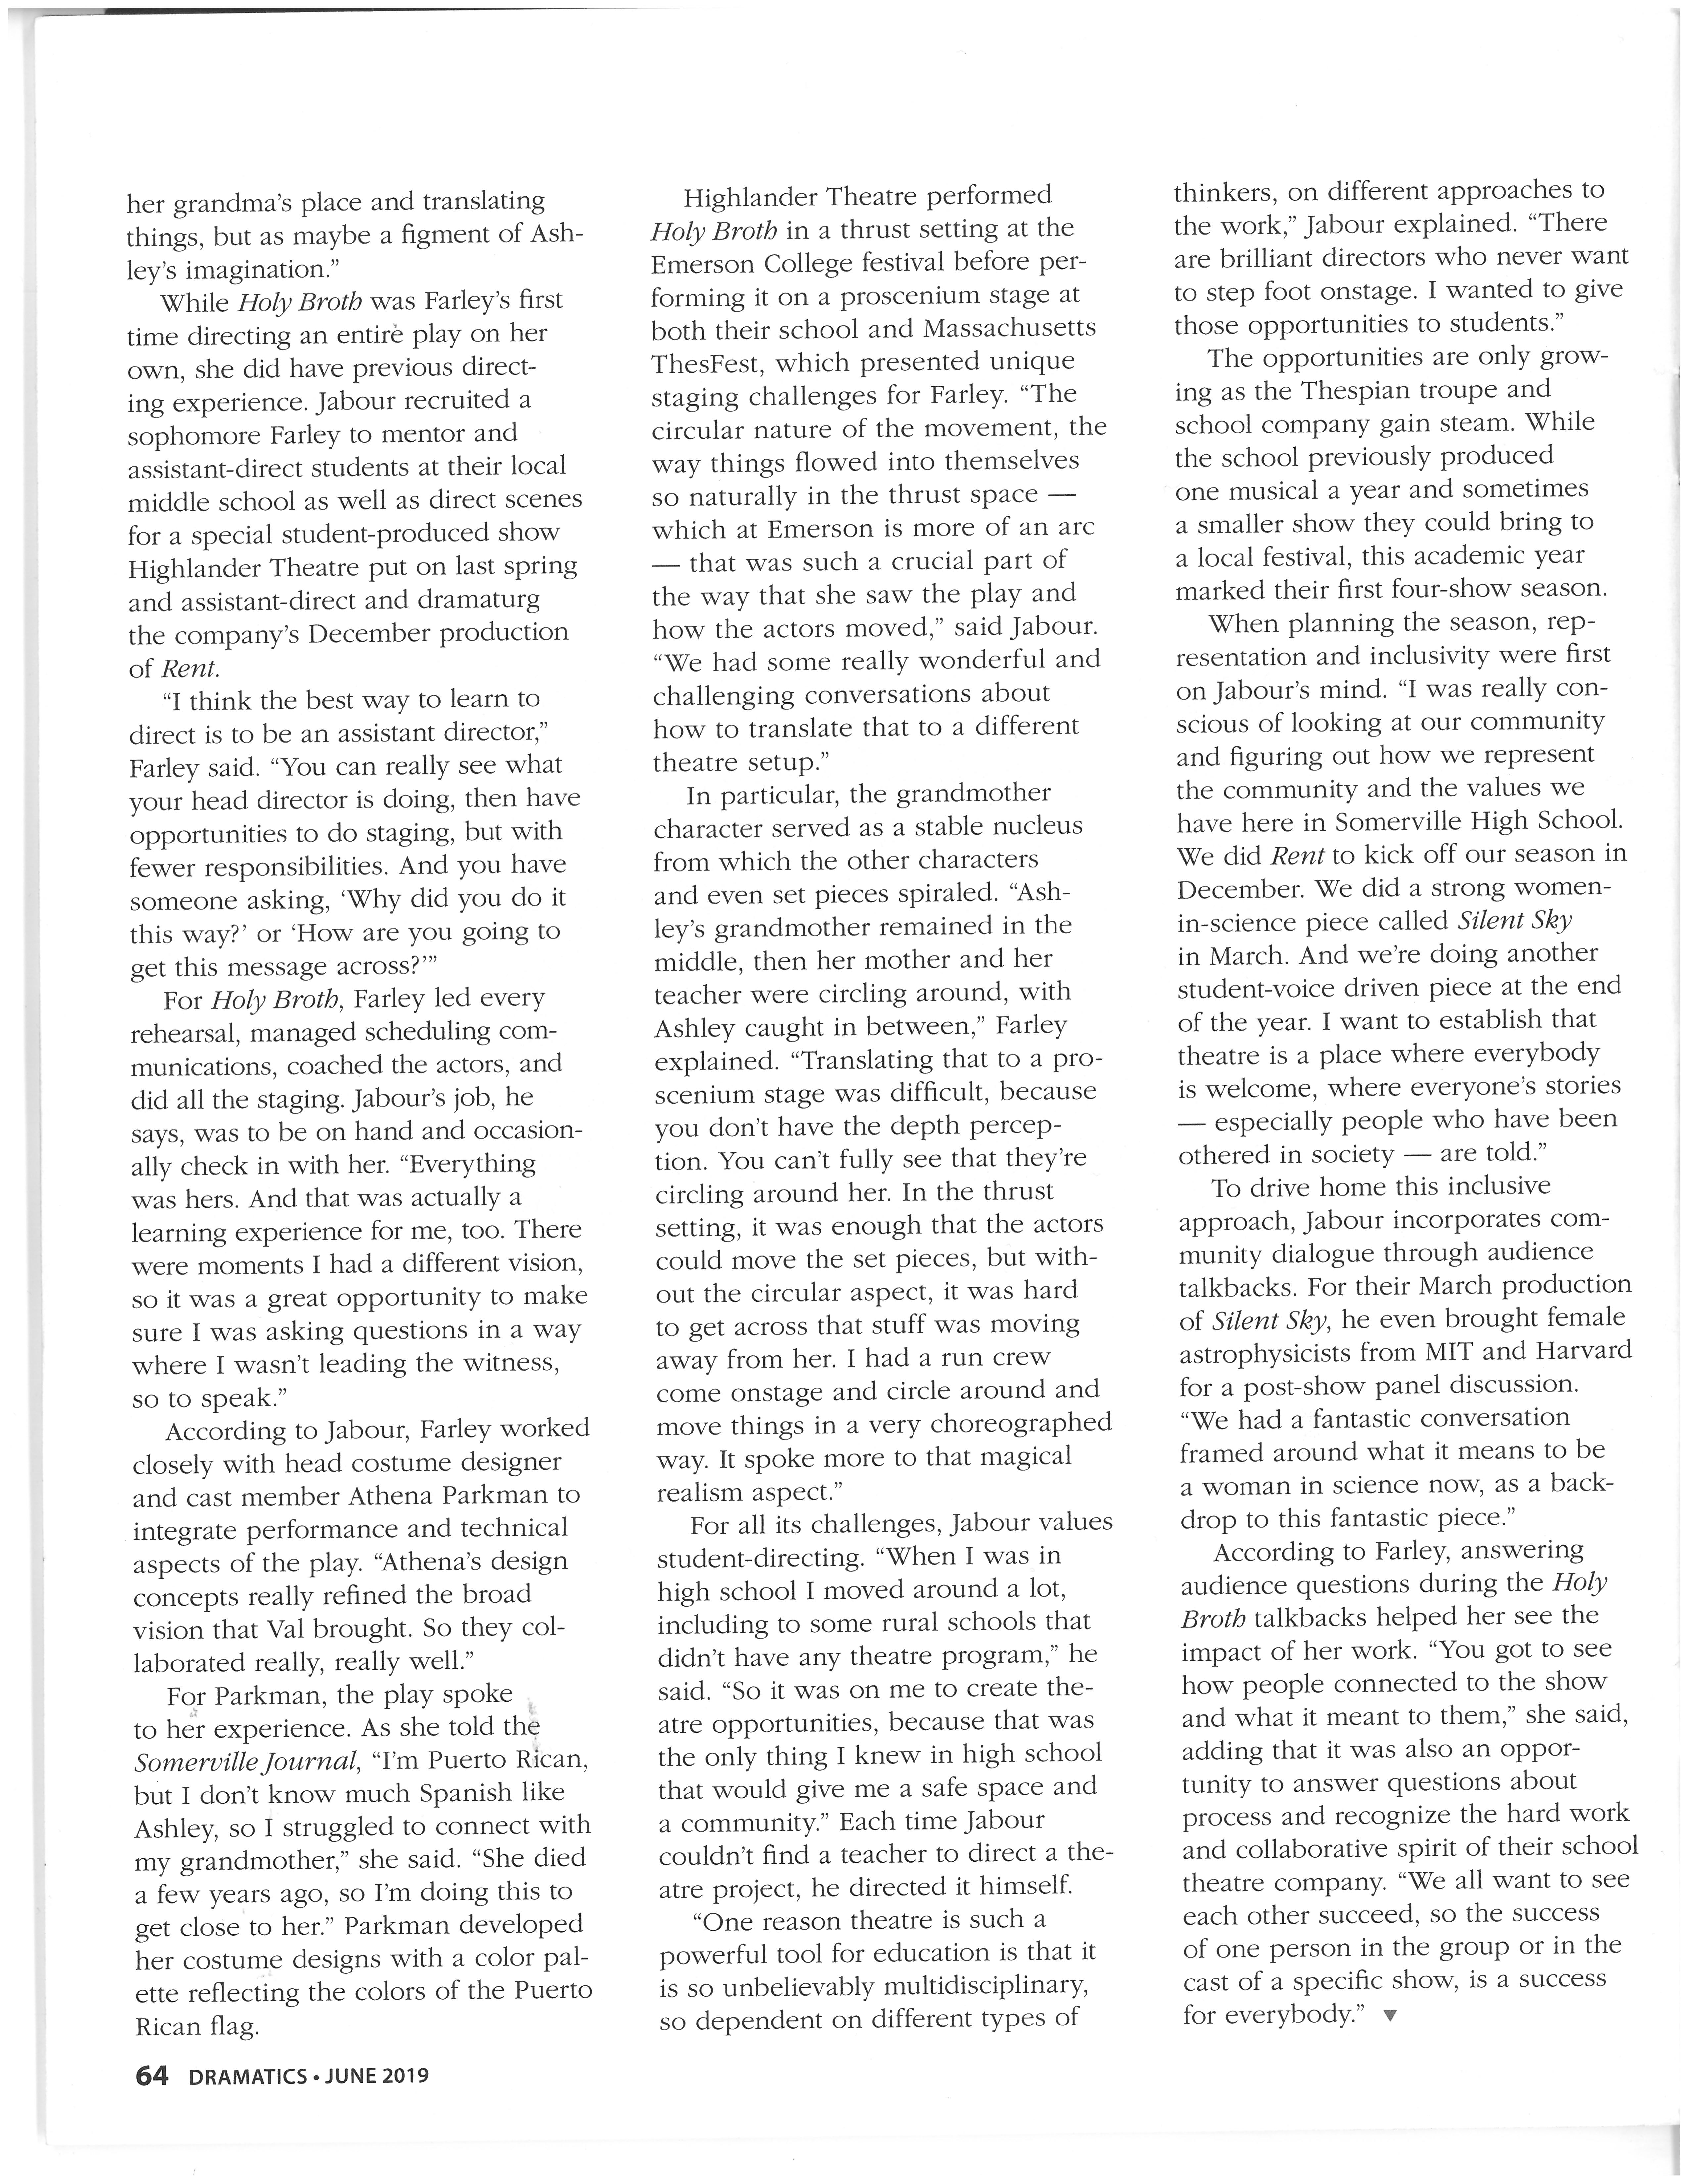 Holy Broth article, page 2